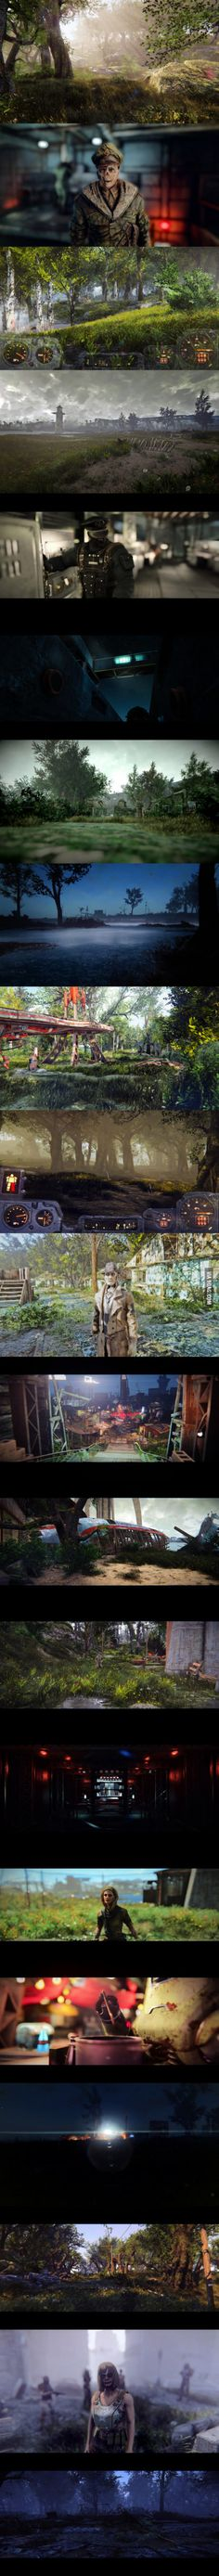 Fallout 4 with mods… I'm sure that asking my PC to run this would be classified as abuse in some circles…